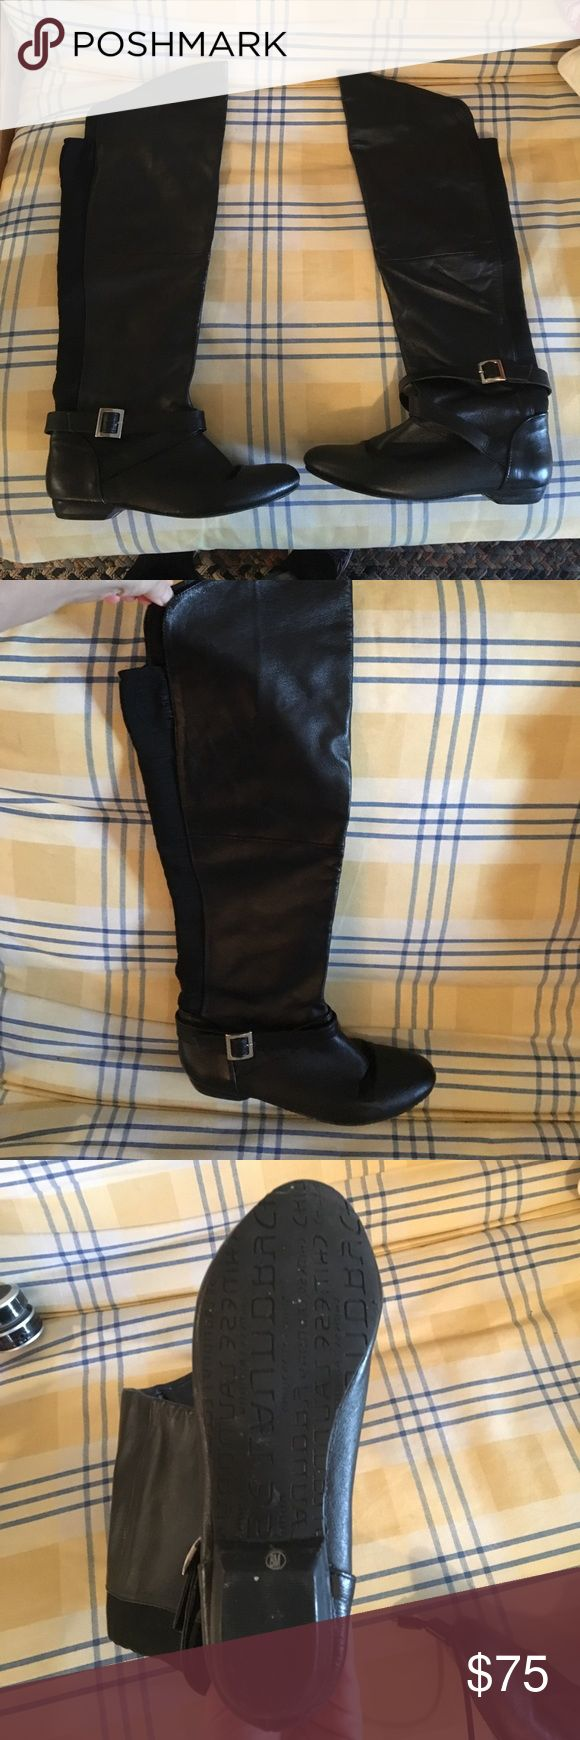 Black Over the knee Leather Chinese Laundry Boots Black leather over the knee boot. Stretch back. Worn a handful of times Chinese Laundry Shoes Over the Knee Boots